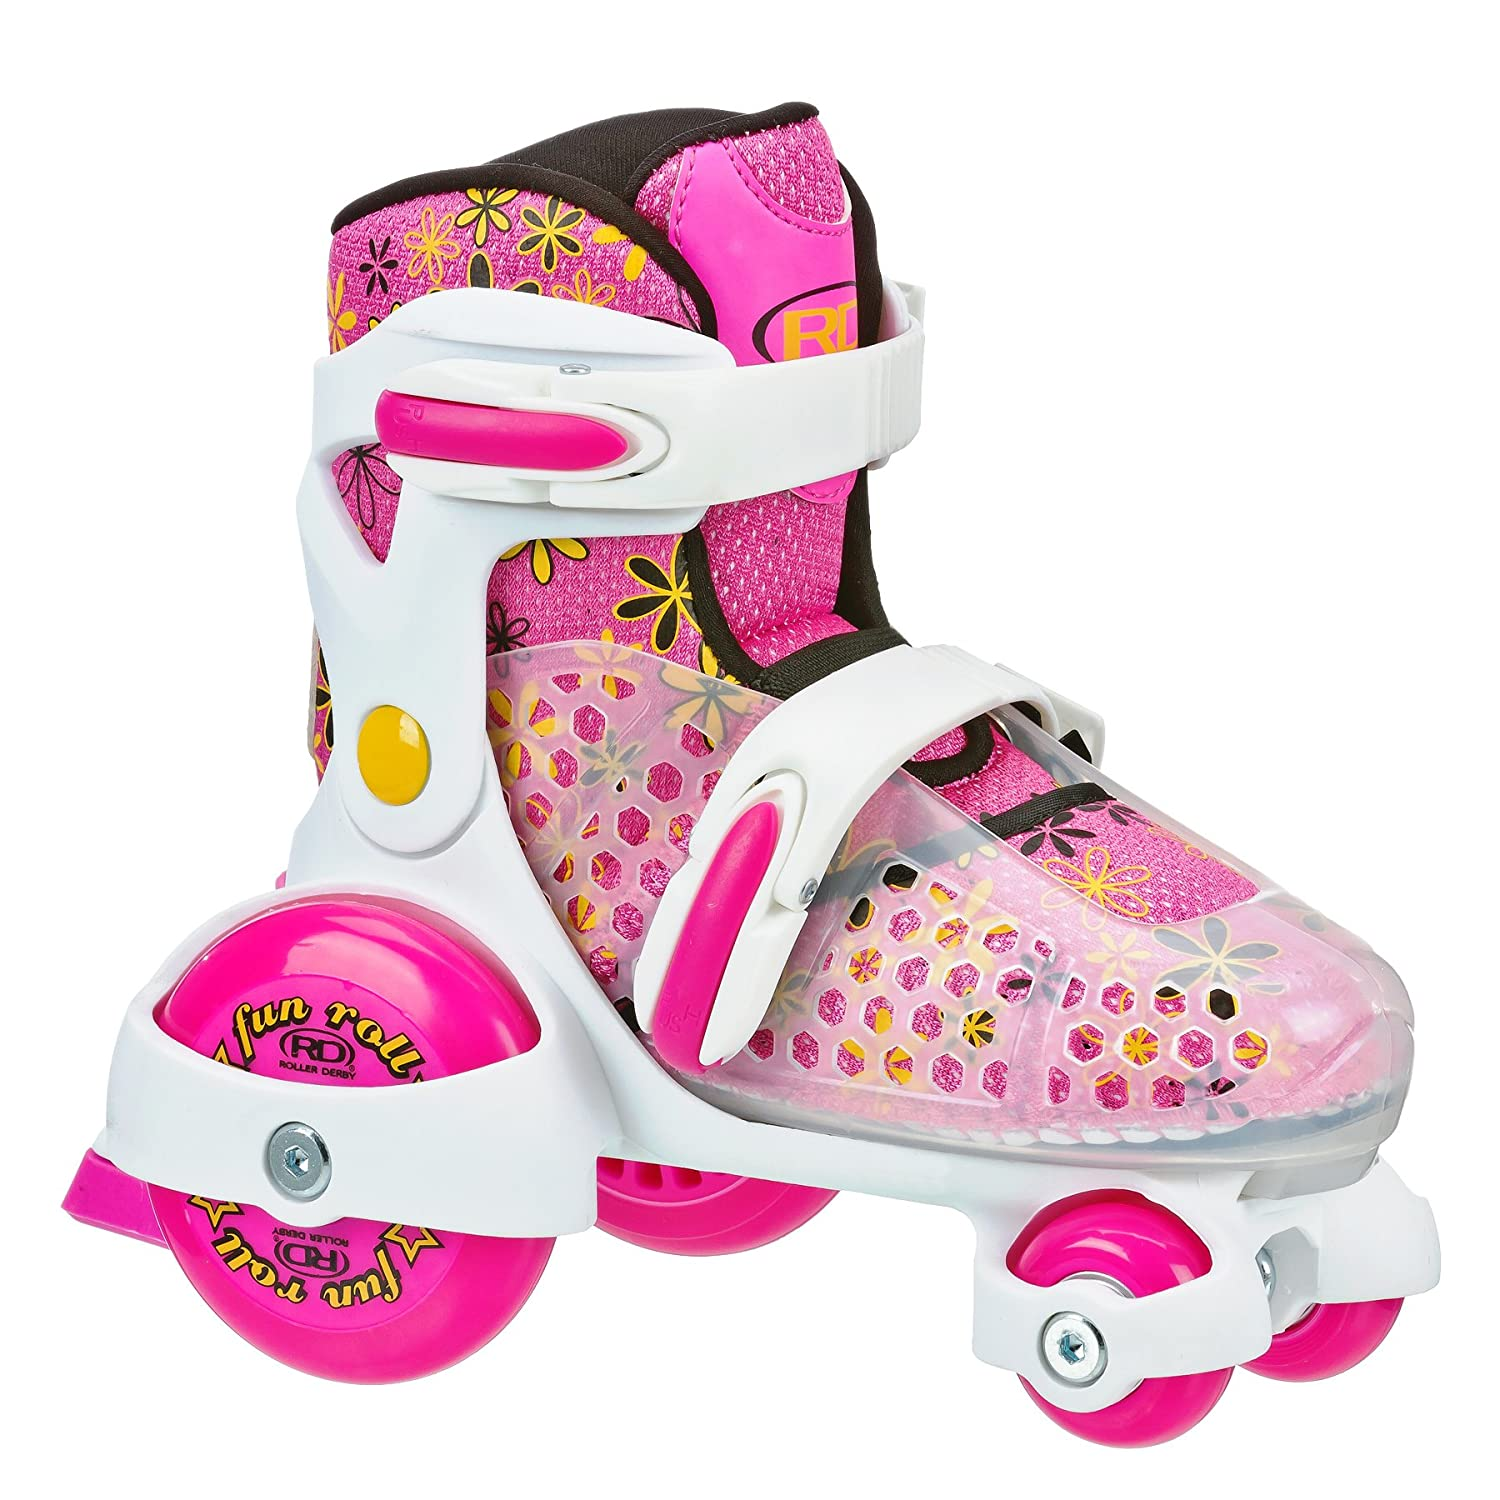 Quad roller skates amazon - Buy Roller Derby Girl S Fun Roll Adjustable Roller Skates Us Kids Small 11 2 Online At Low Prices In India Amazon In